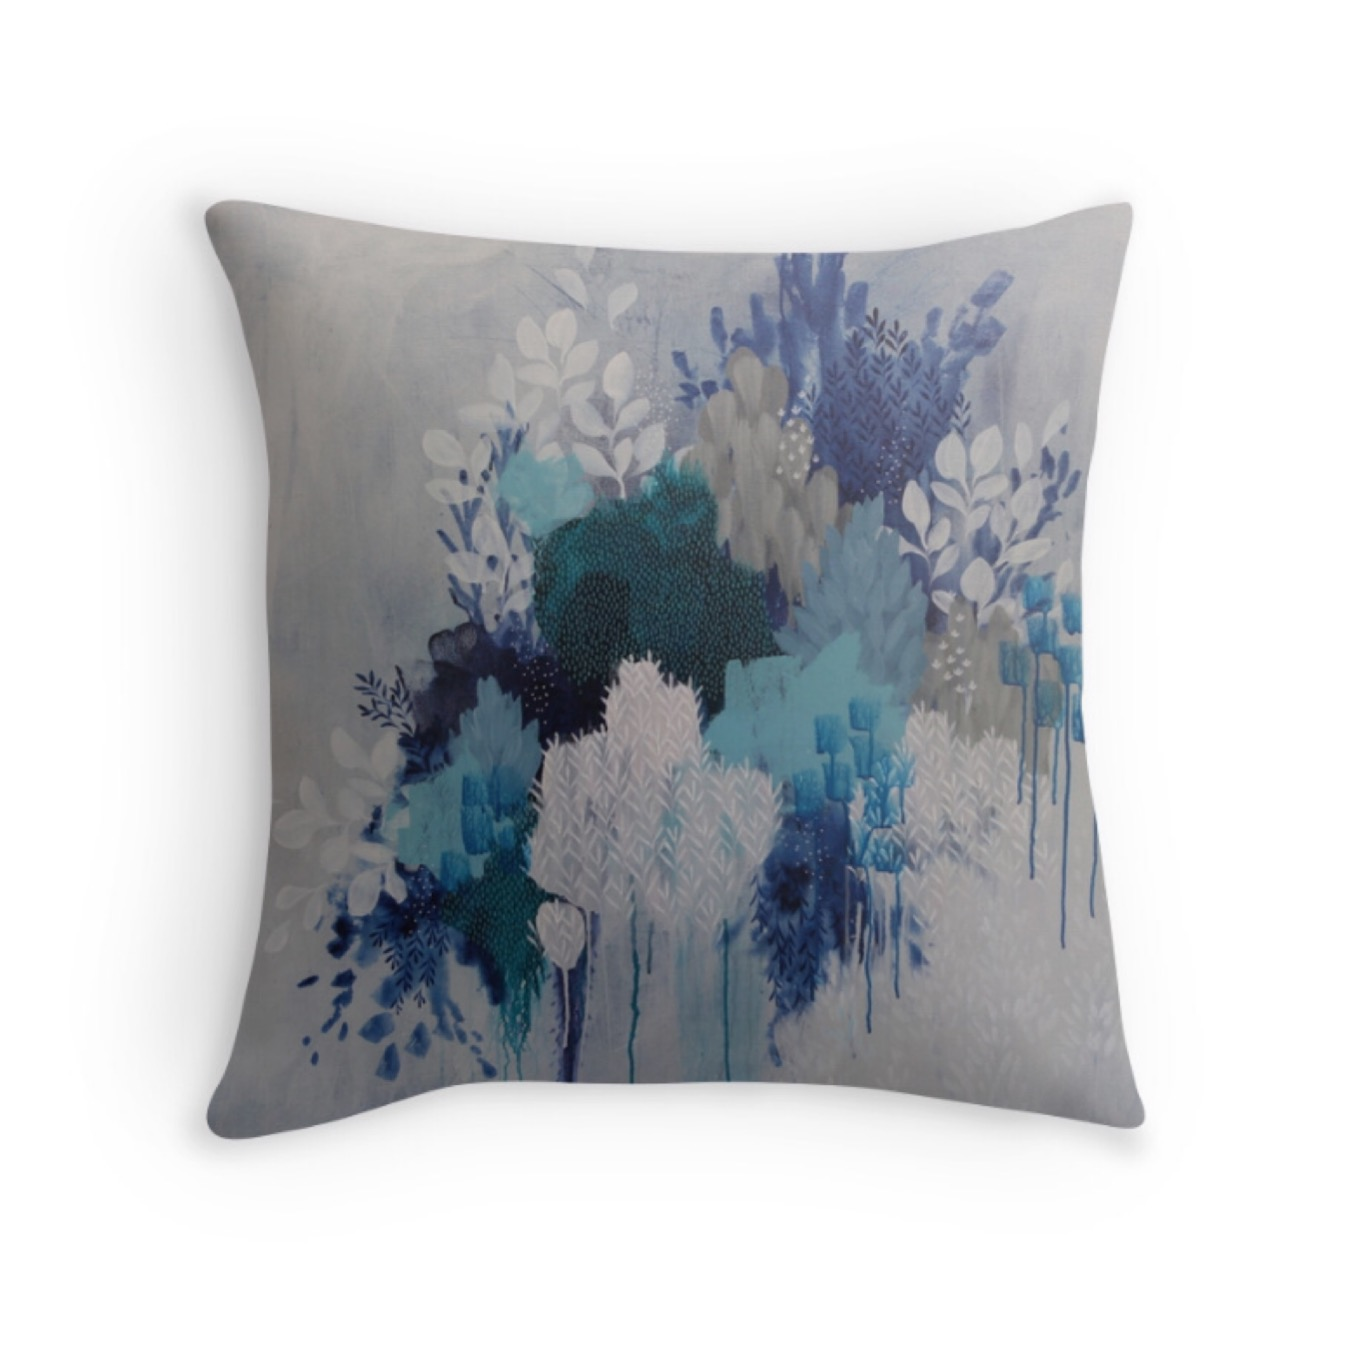 Large Throw Pillow $42.50